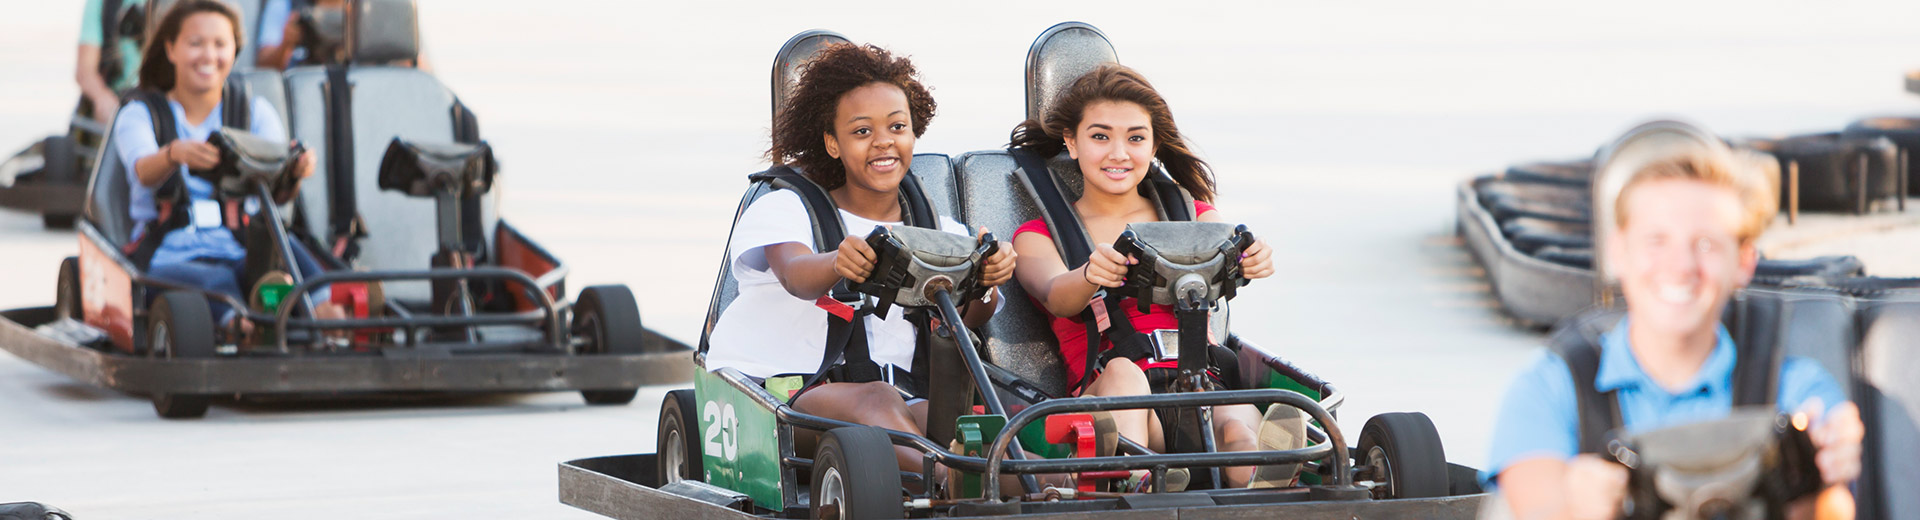 Go Karts | Adventure Landing Family Entertainment Center | St. Augustine, FL